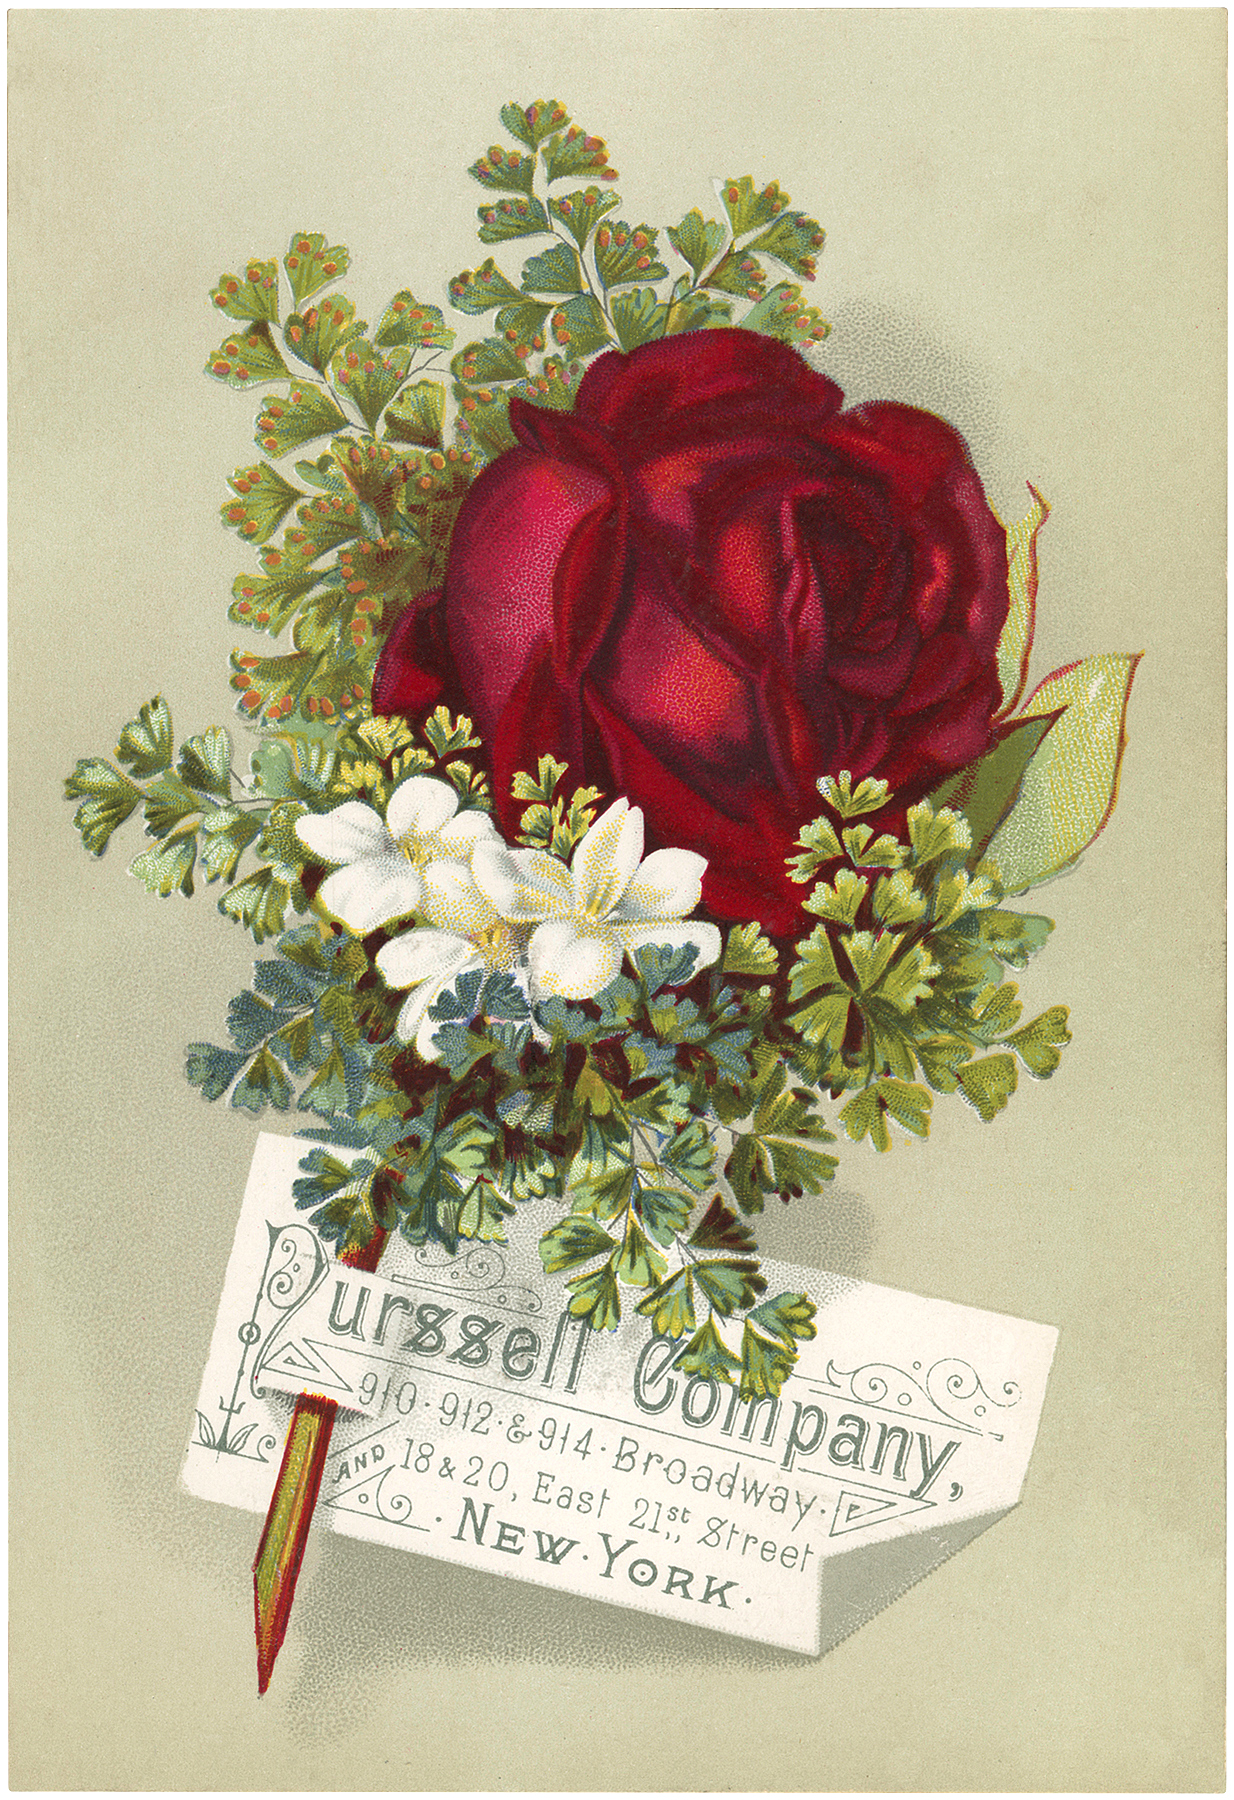 Vintage Rose Advertisement